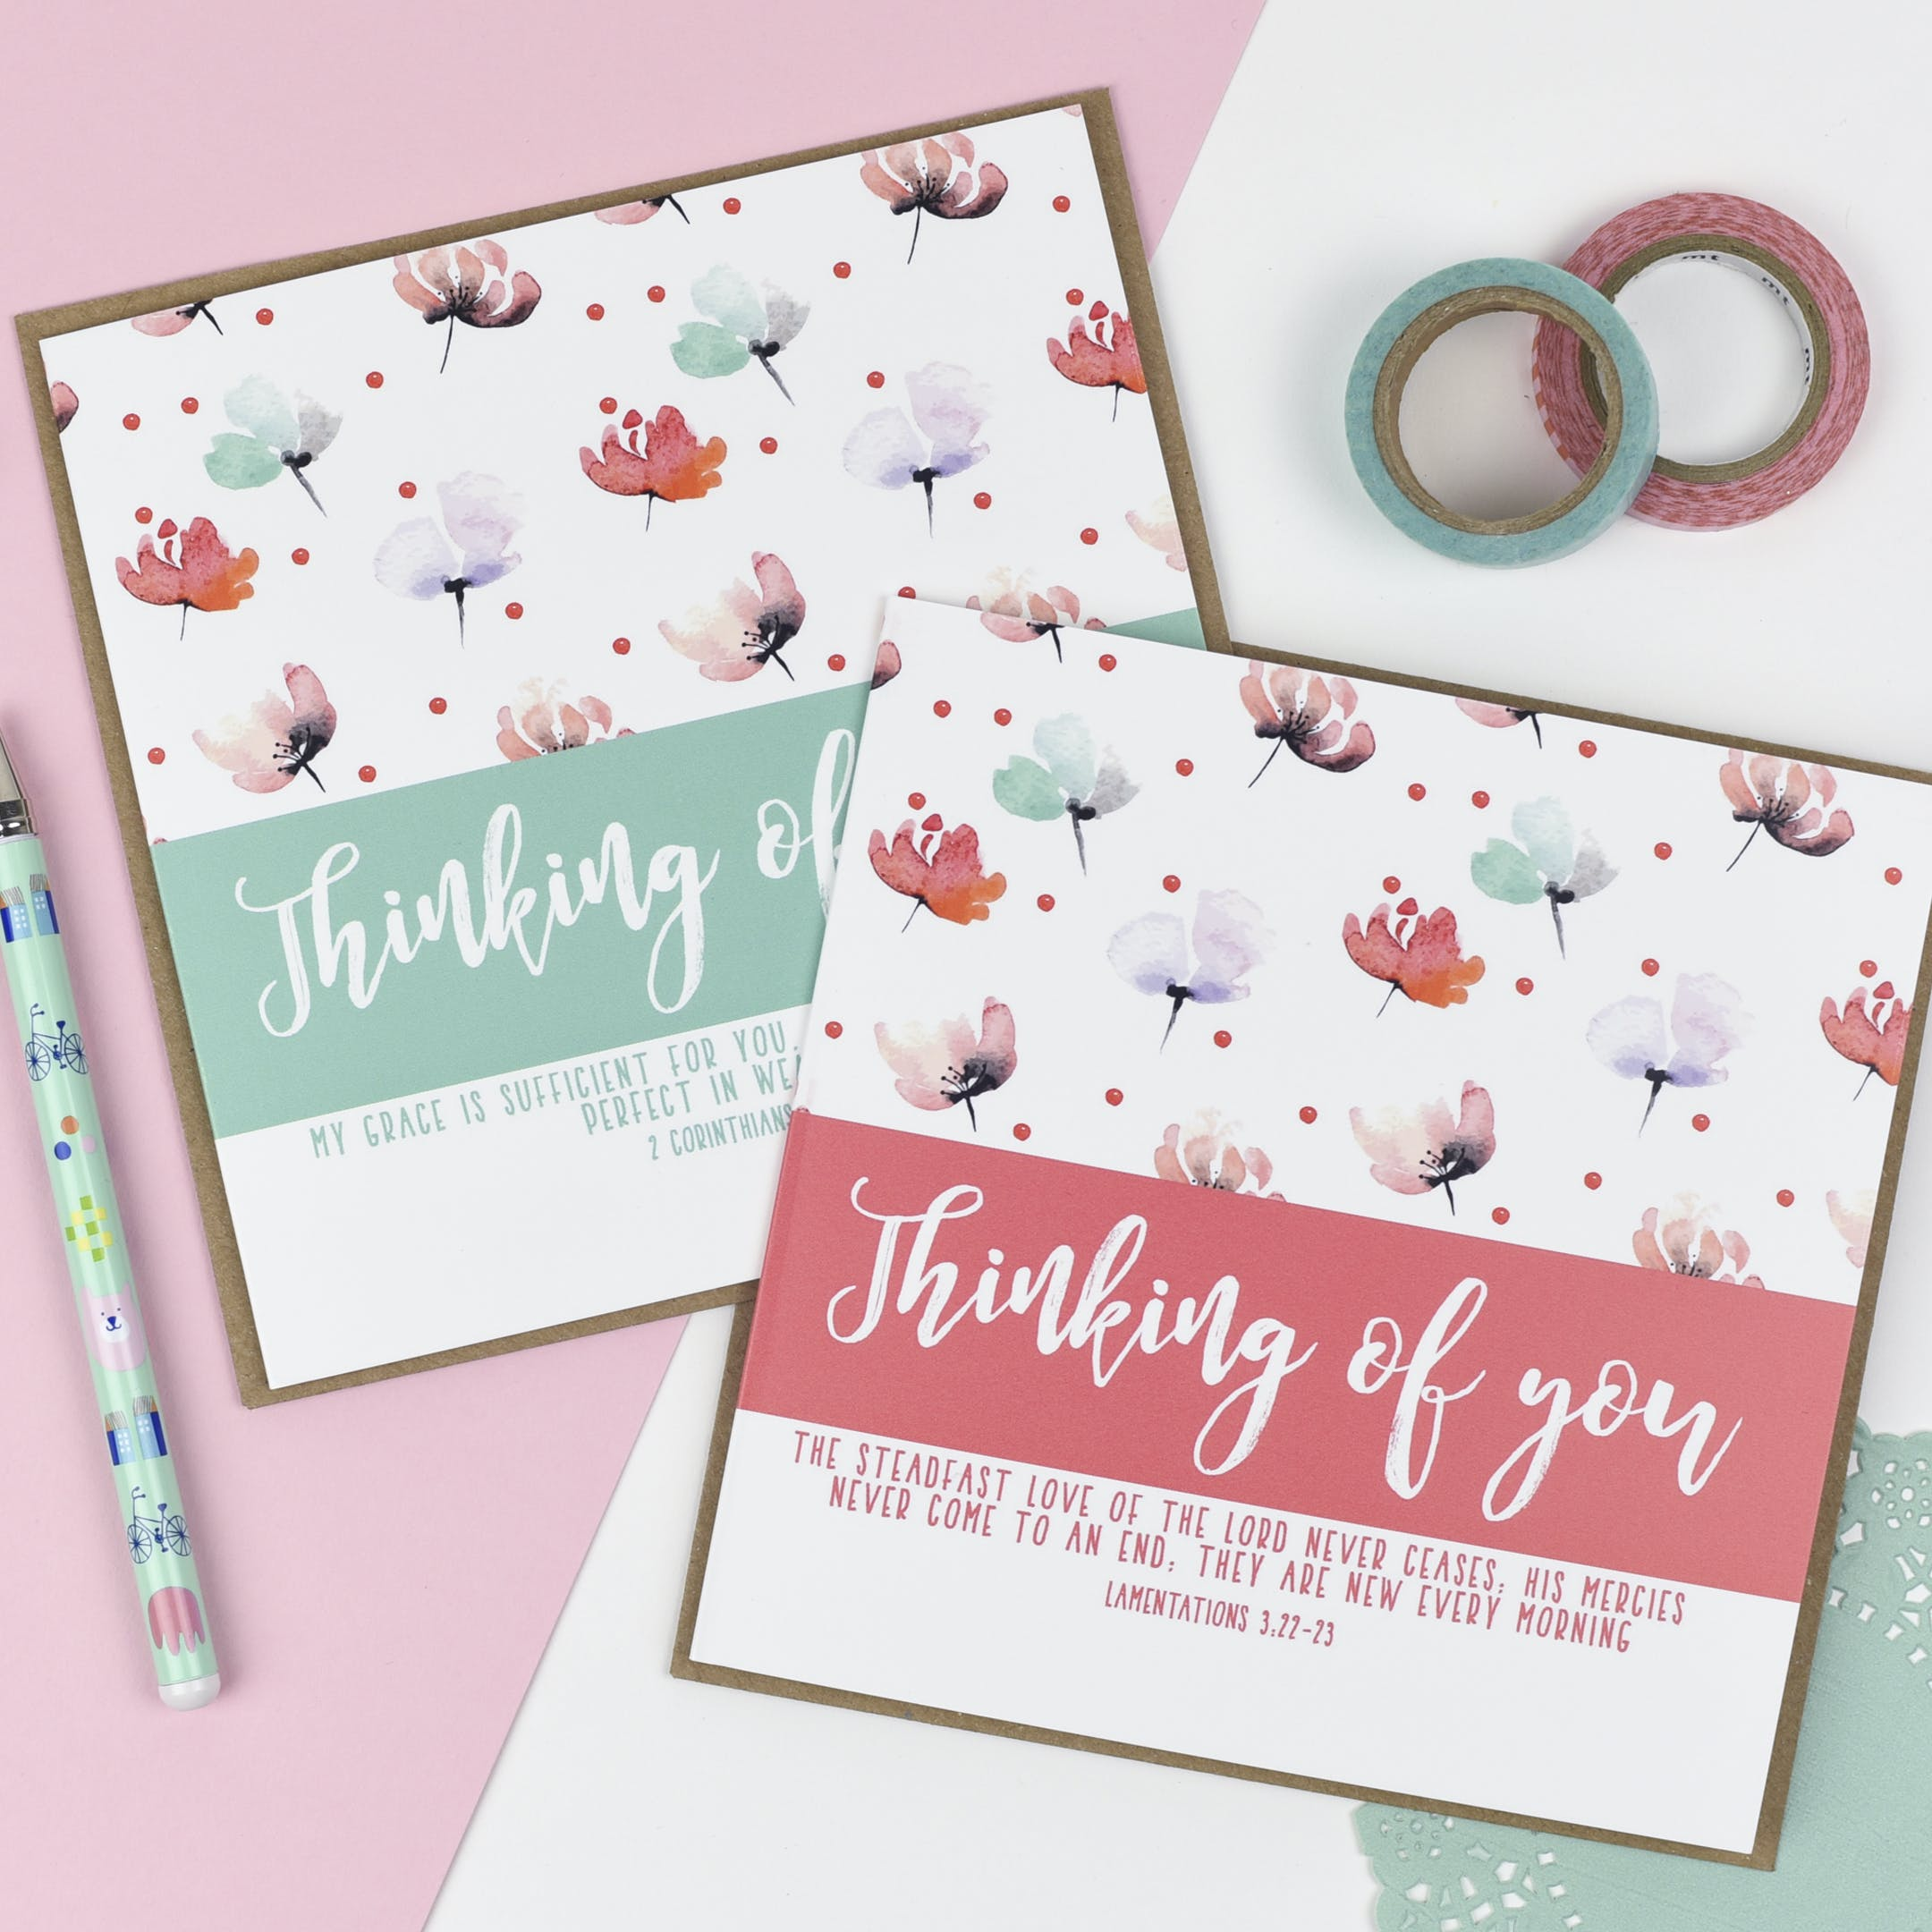 Floral pastel Thinking of You Christian Cards by CasaMia Designs at Cheerfully Given